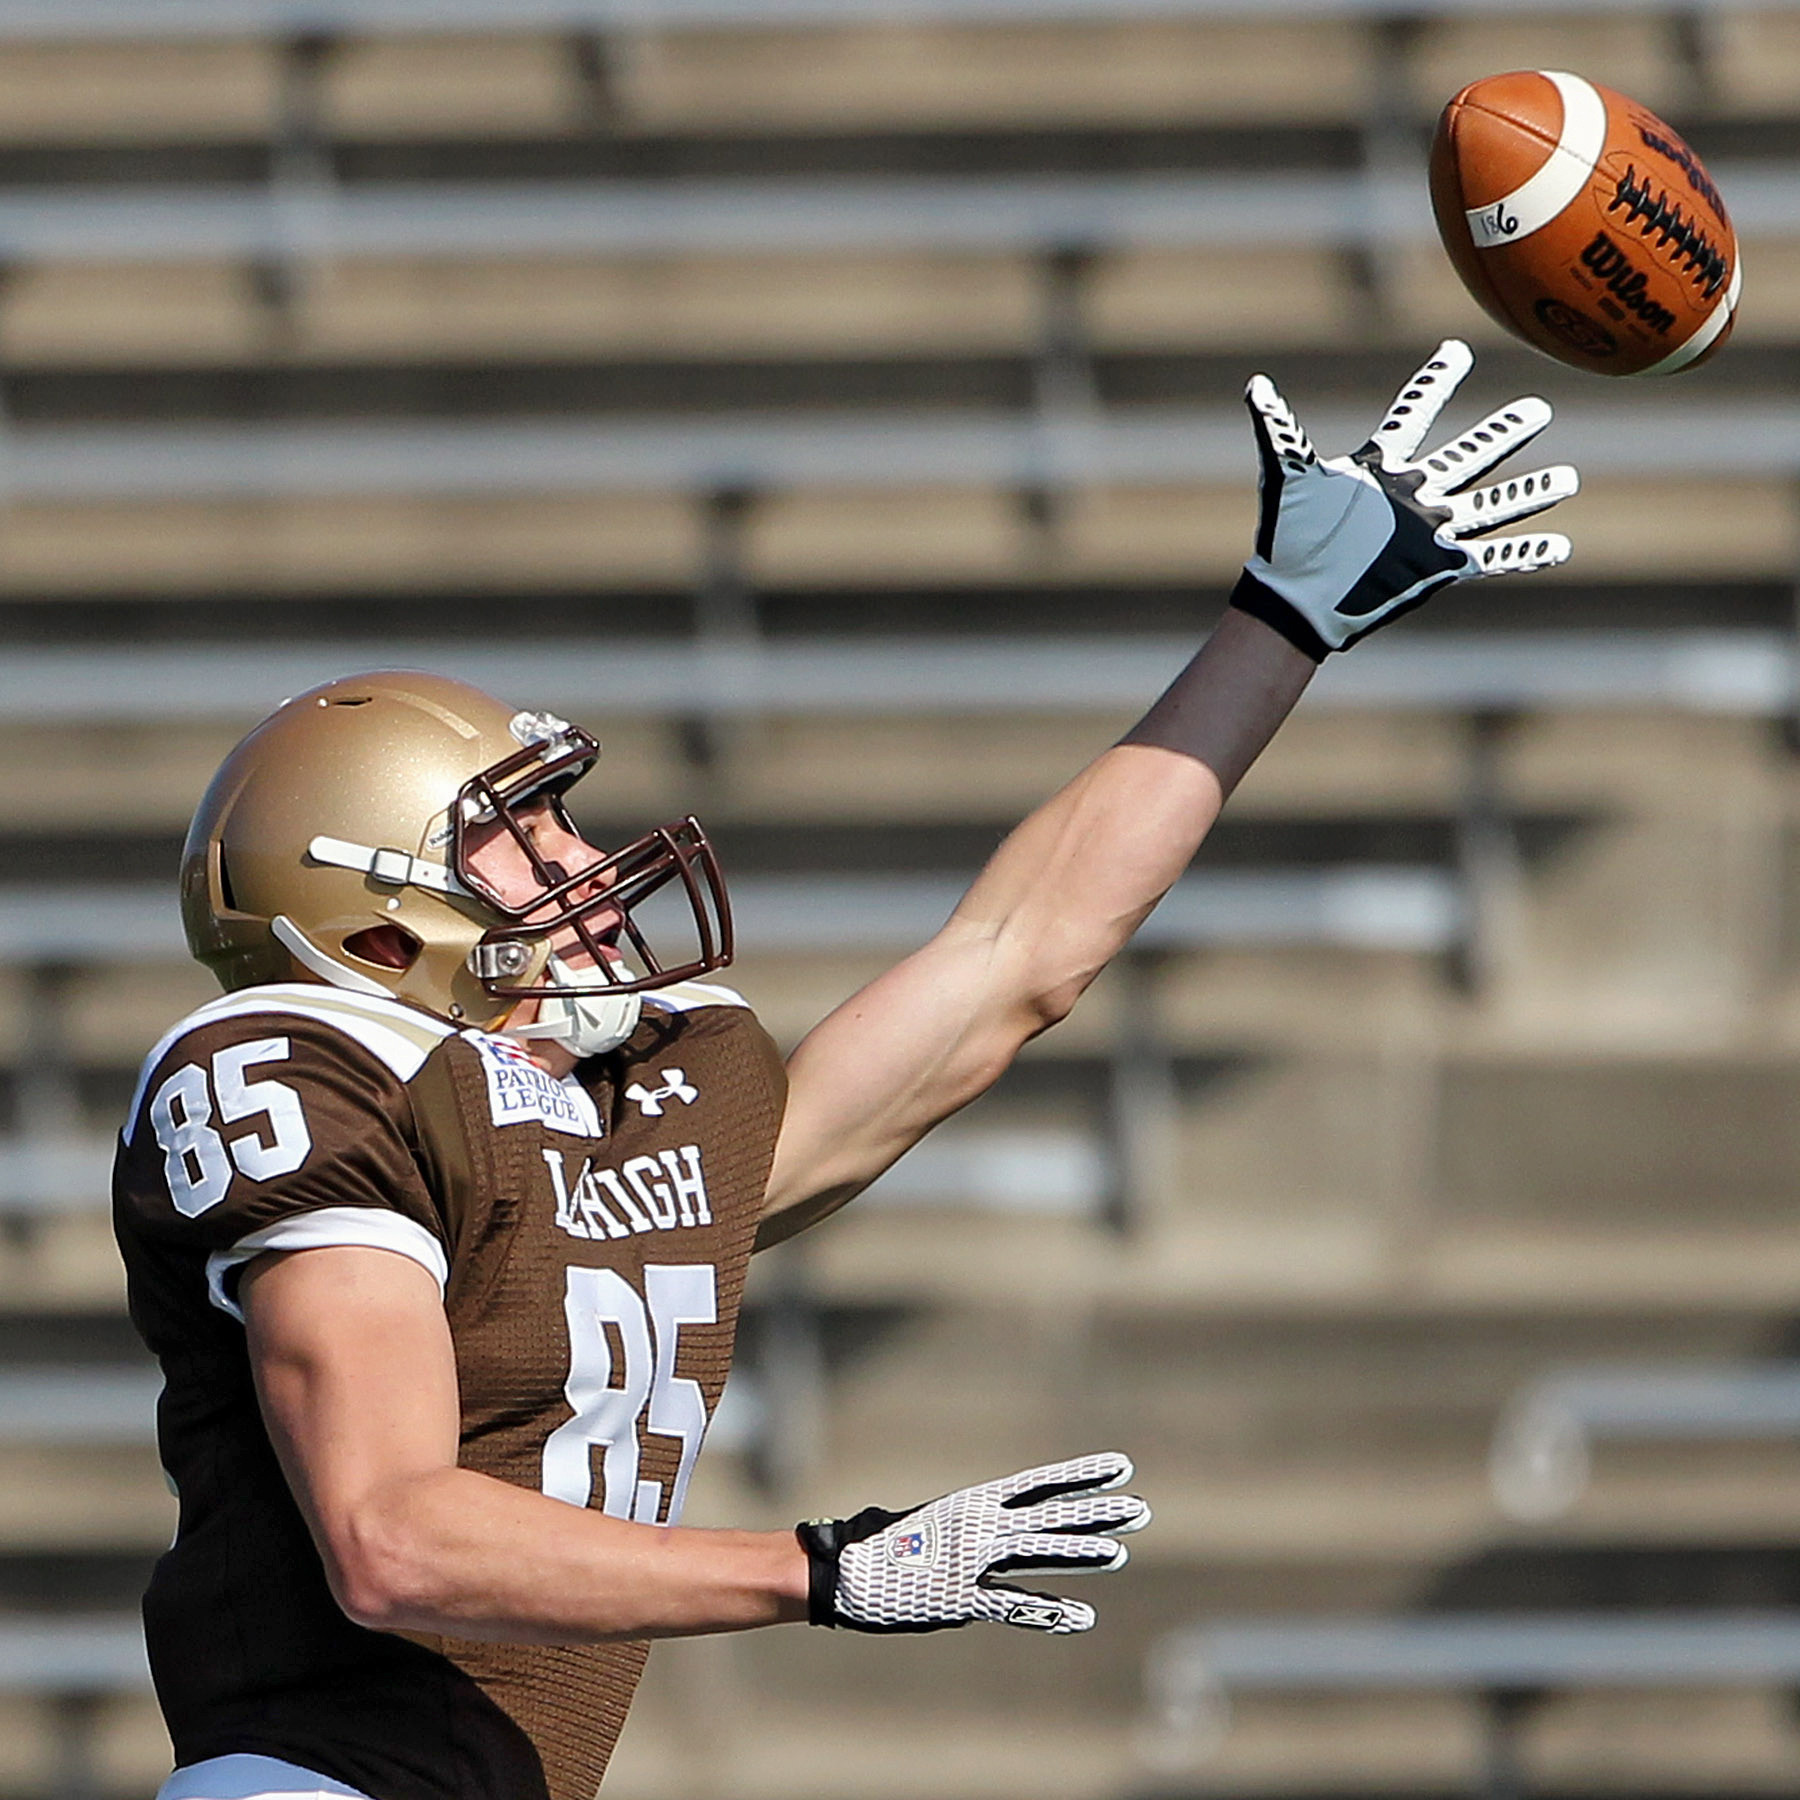 Lehigh Football Season Hinges On Contributions from Underclassmen